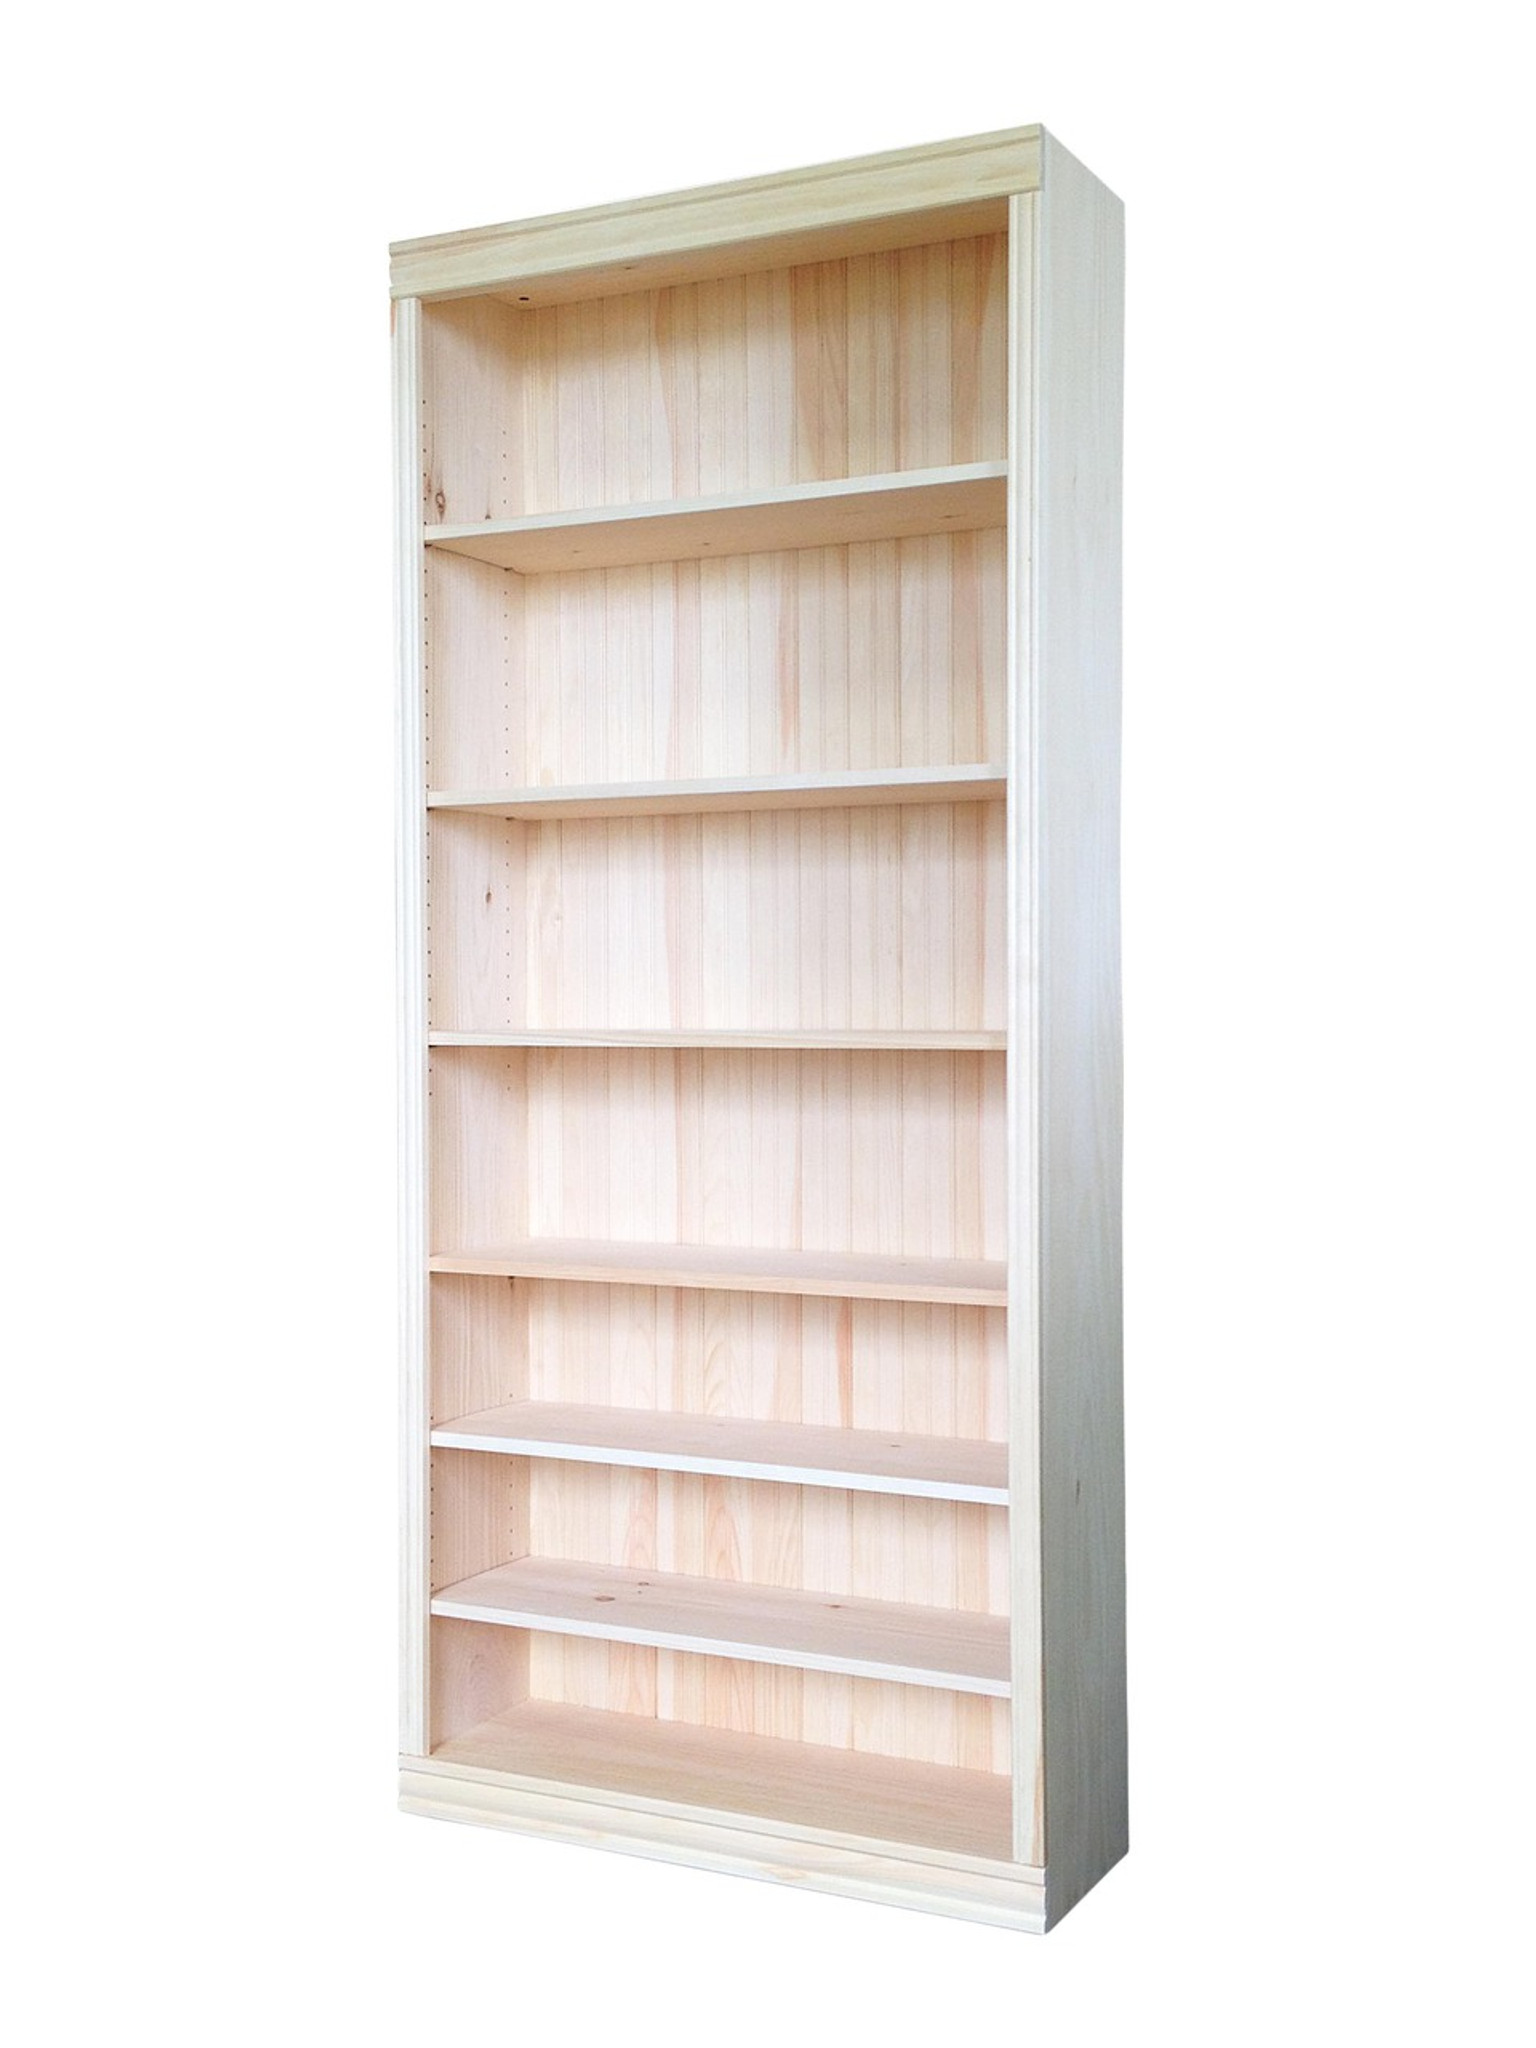 gallery gracious tall ah narrow marvellous pine bookcase photos soothing bookcases